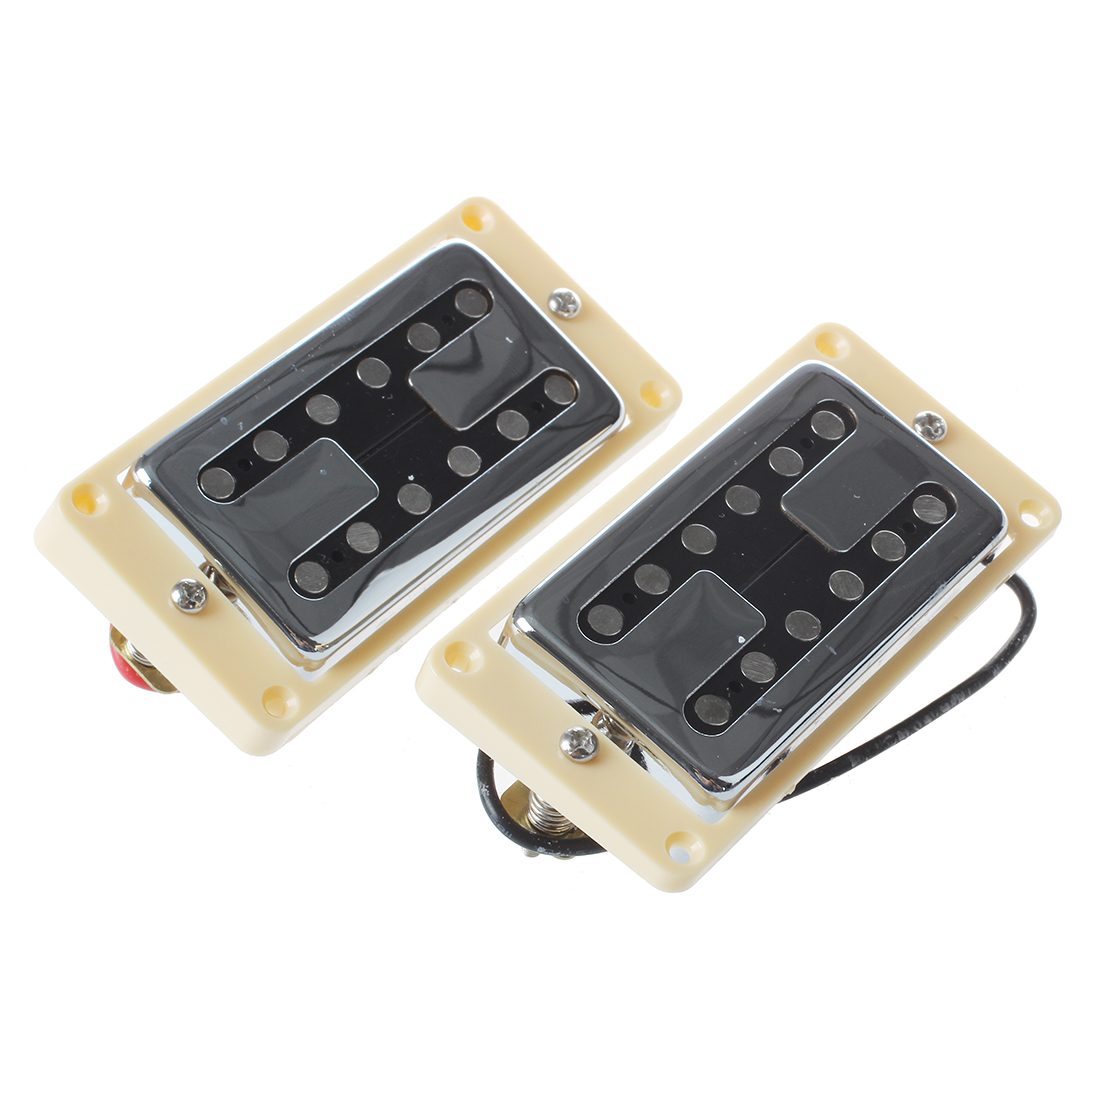 HOT 8X Chrome Neck And Bridge Humbucker Pickups w/ Cream Frame humbucker pickup for electric guitar double coil bridge and neck pickups set replacement chrome